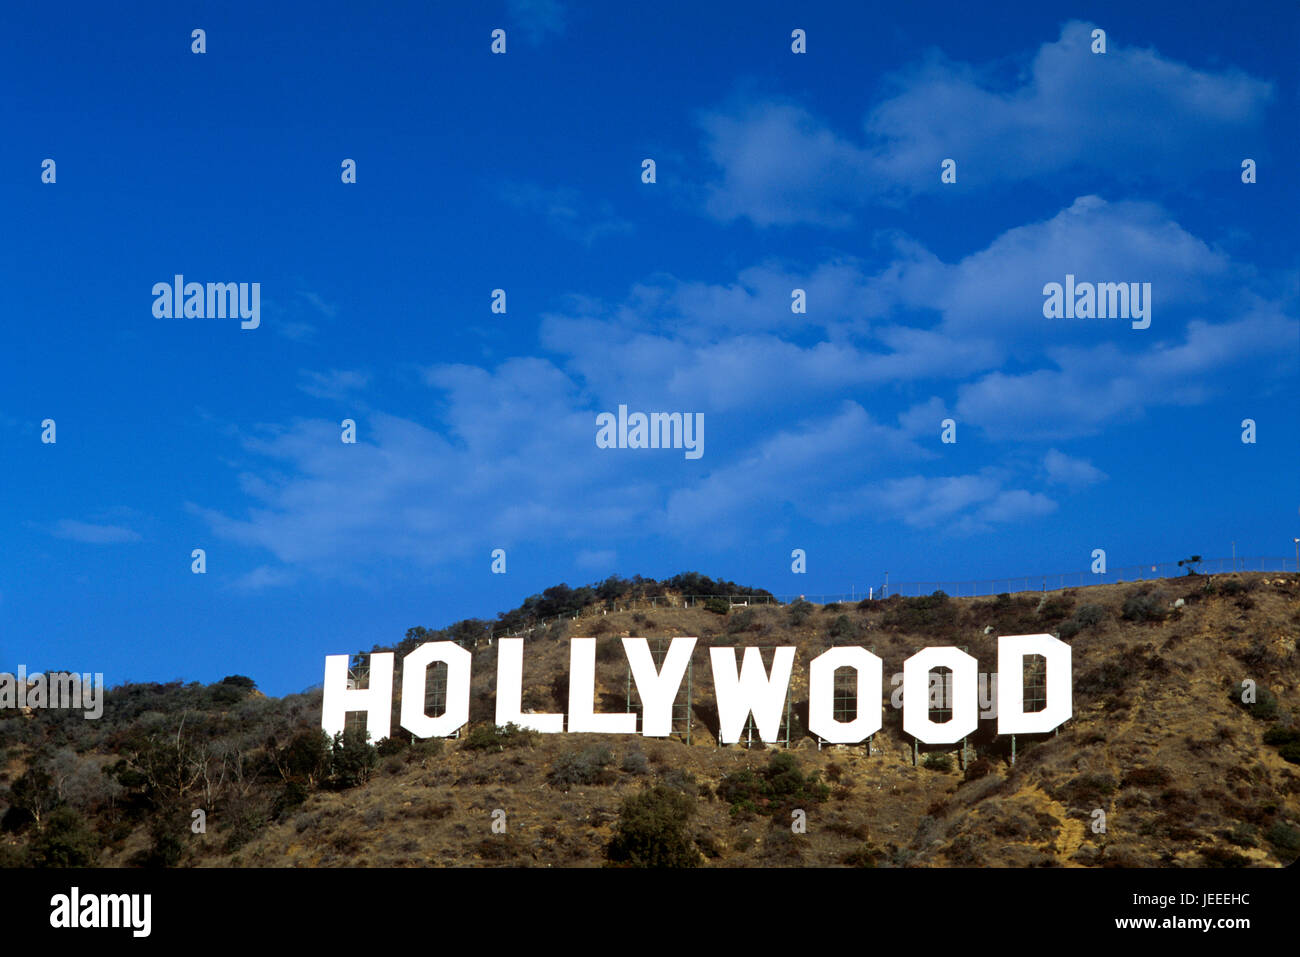 The iconic  Hollywood Sign in the Hollywood Hills above Los Angeles, CA. - Stock Image